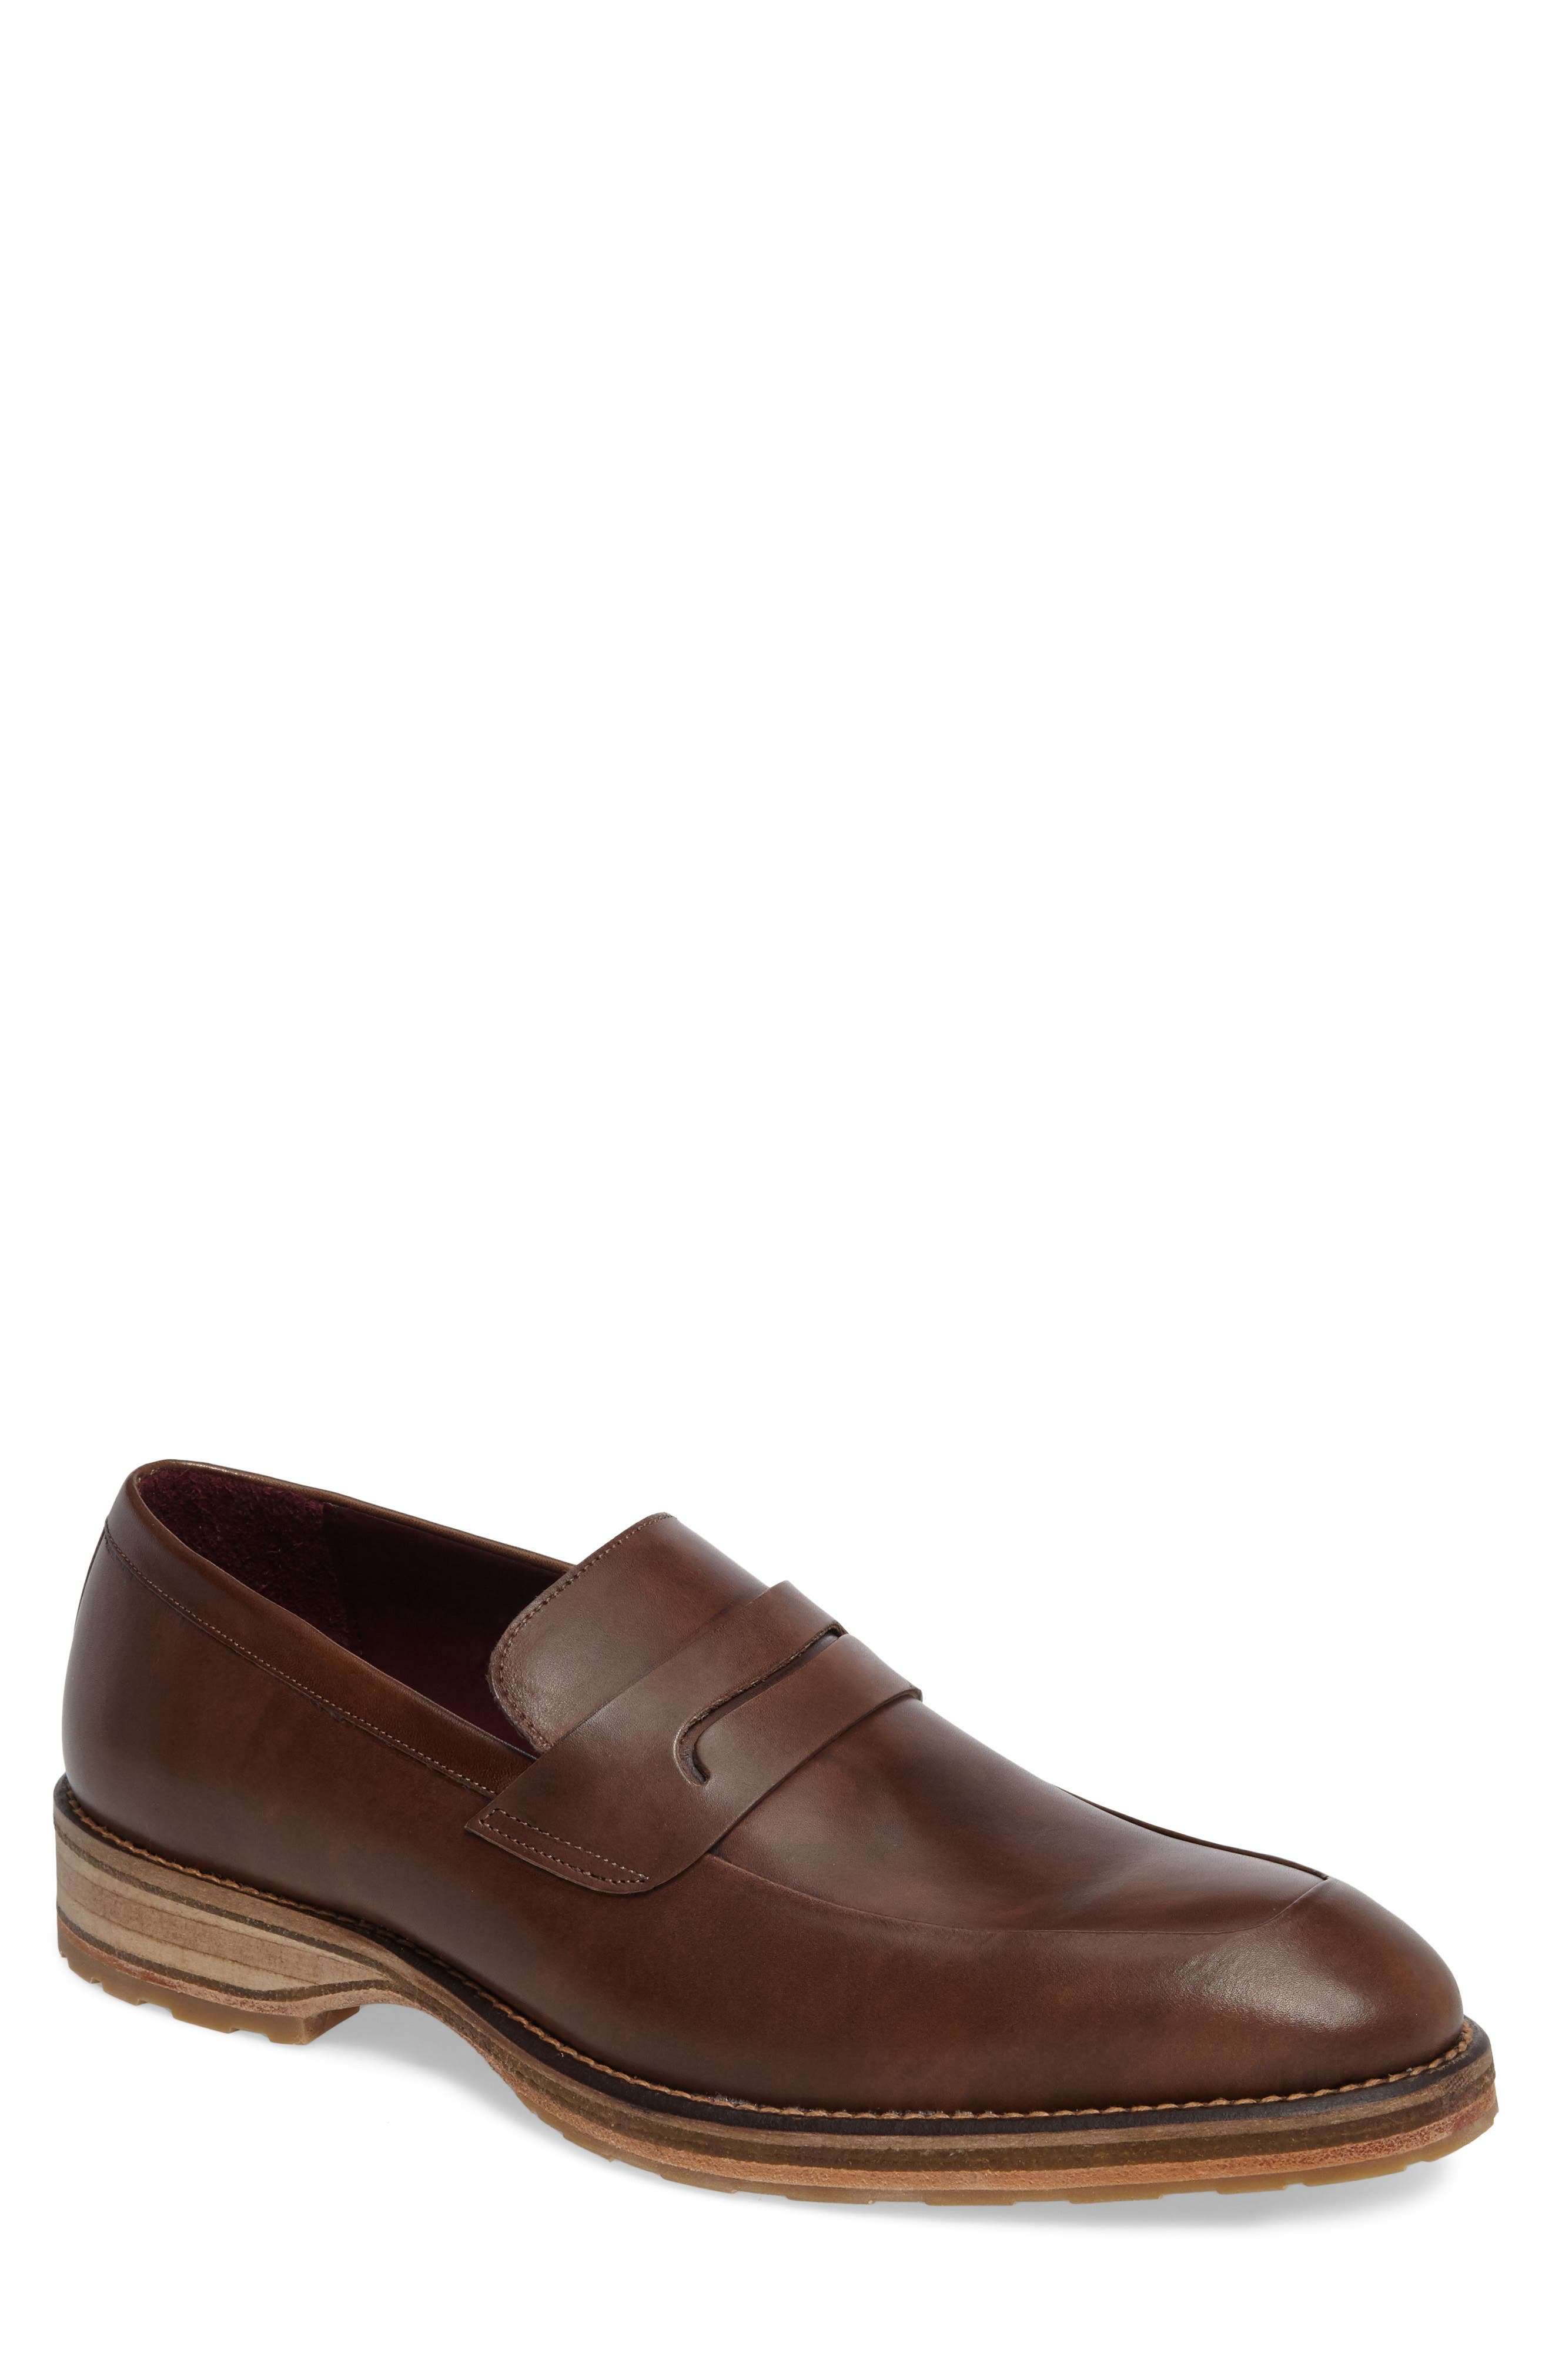 Cantonia Penny Loafer,                         Main,                         color,